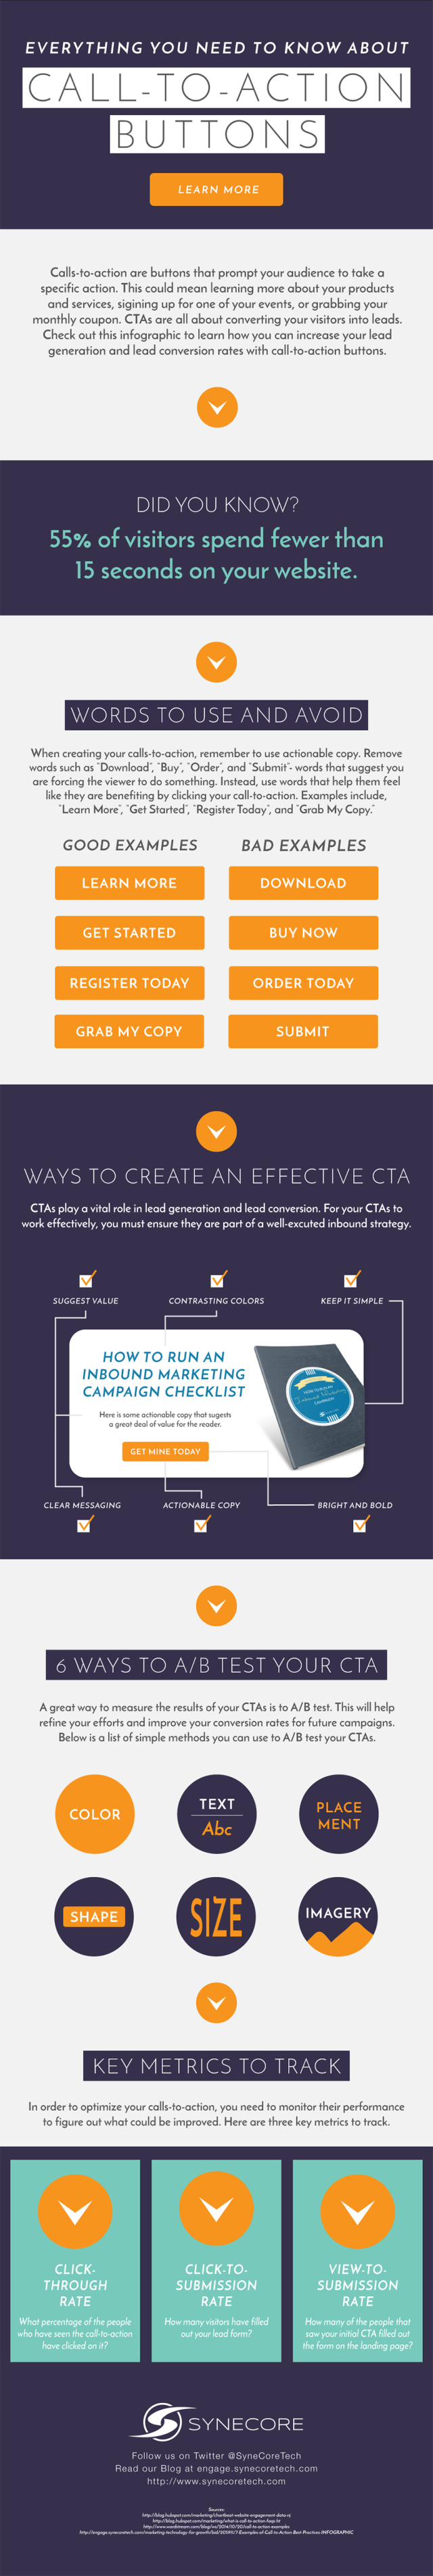 call-to-action-tips